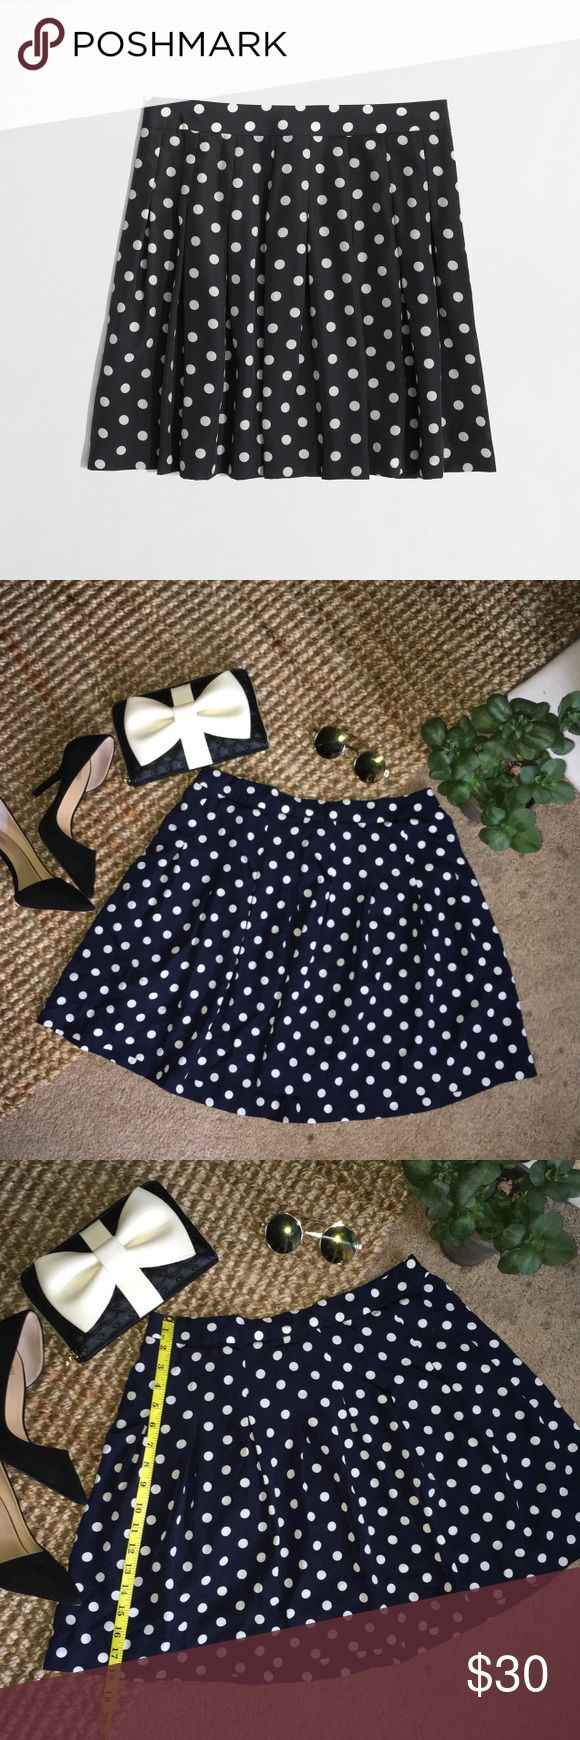 """J.Crew Factory Navy&White Polka Dot Pleated Skirt In excellent condition! J.Crew Factory Navy&White Polka Dot Pleated Skirt. Size 6. Length is about 18.5"""". Gently used. Damage stain and smoke free. Reasonable offers are welcome J. Crew Factory Skirts Circle & Skater"""